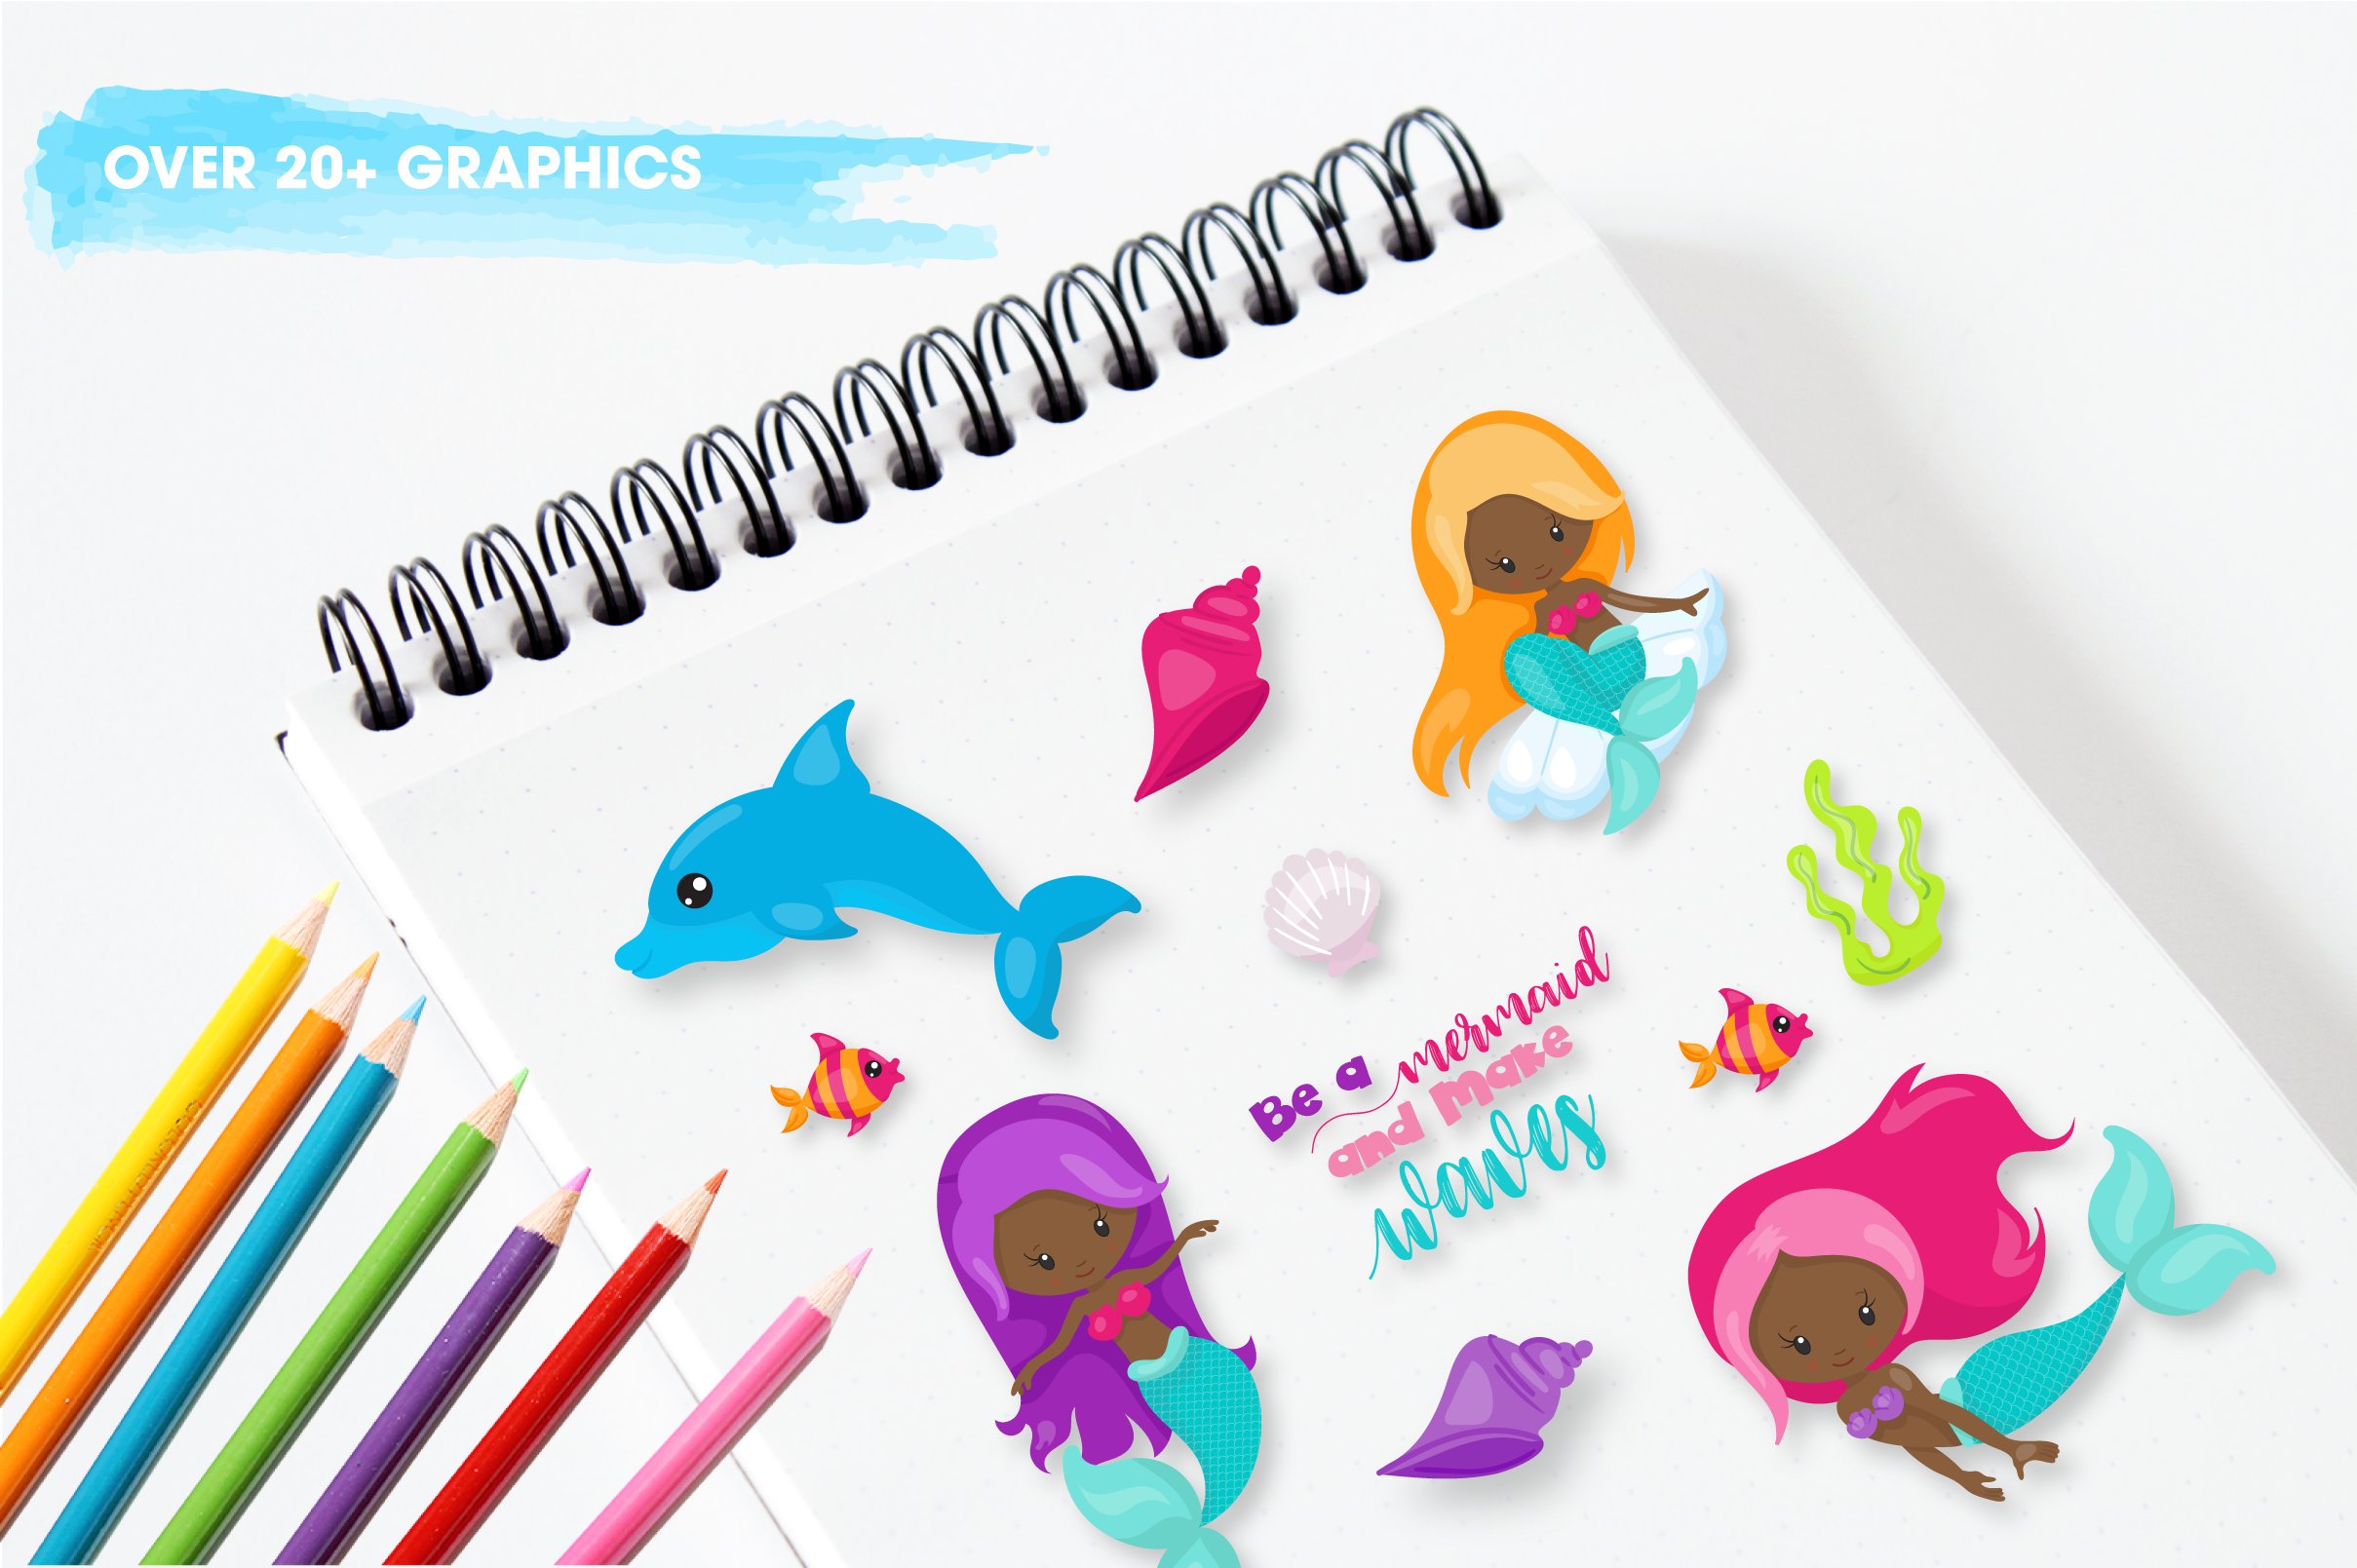 mermaid vibes graphics and illustrations example image 3